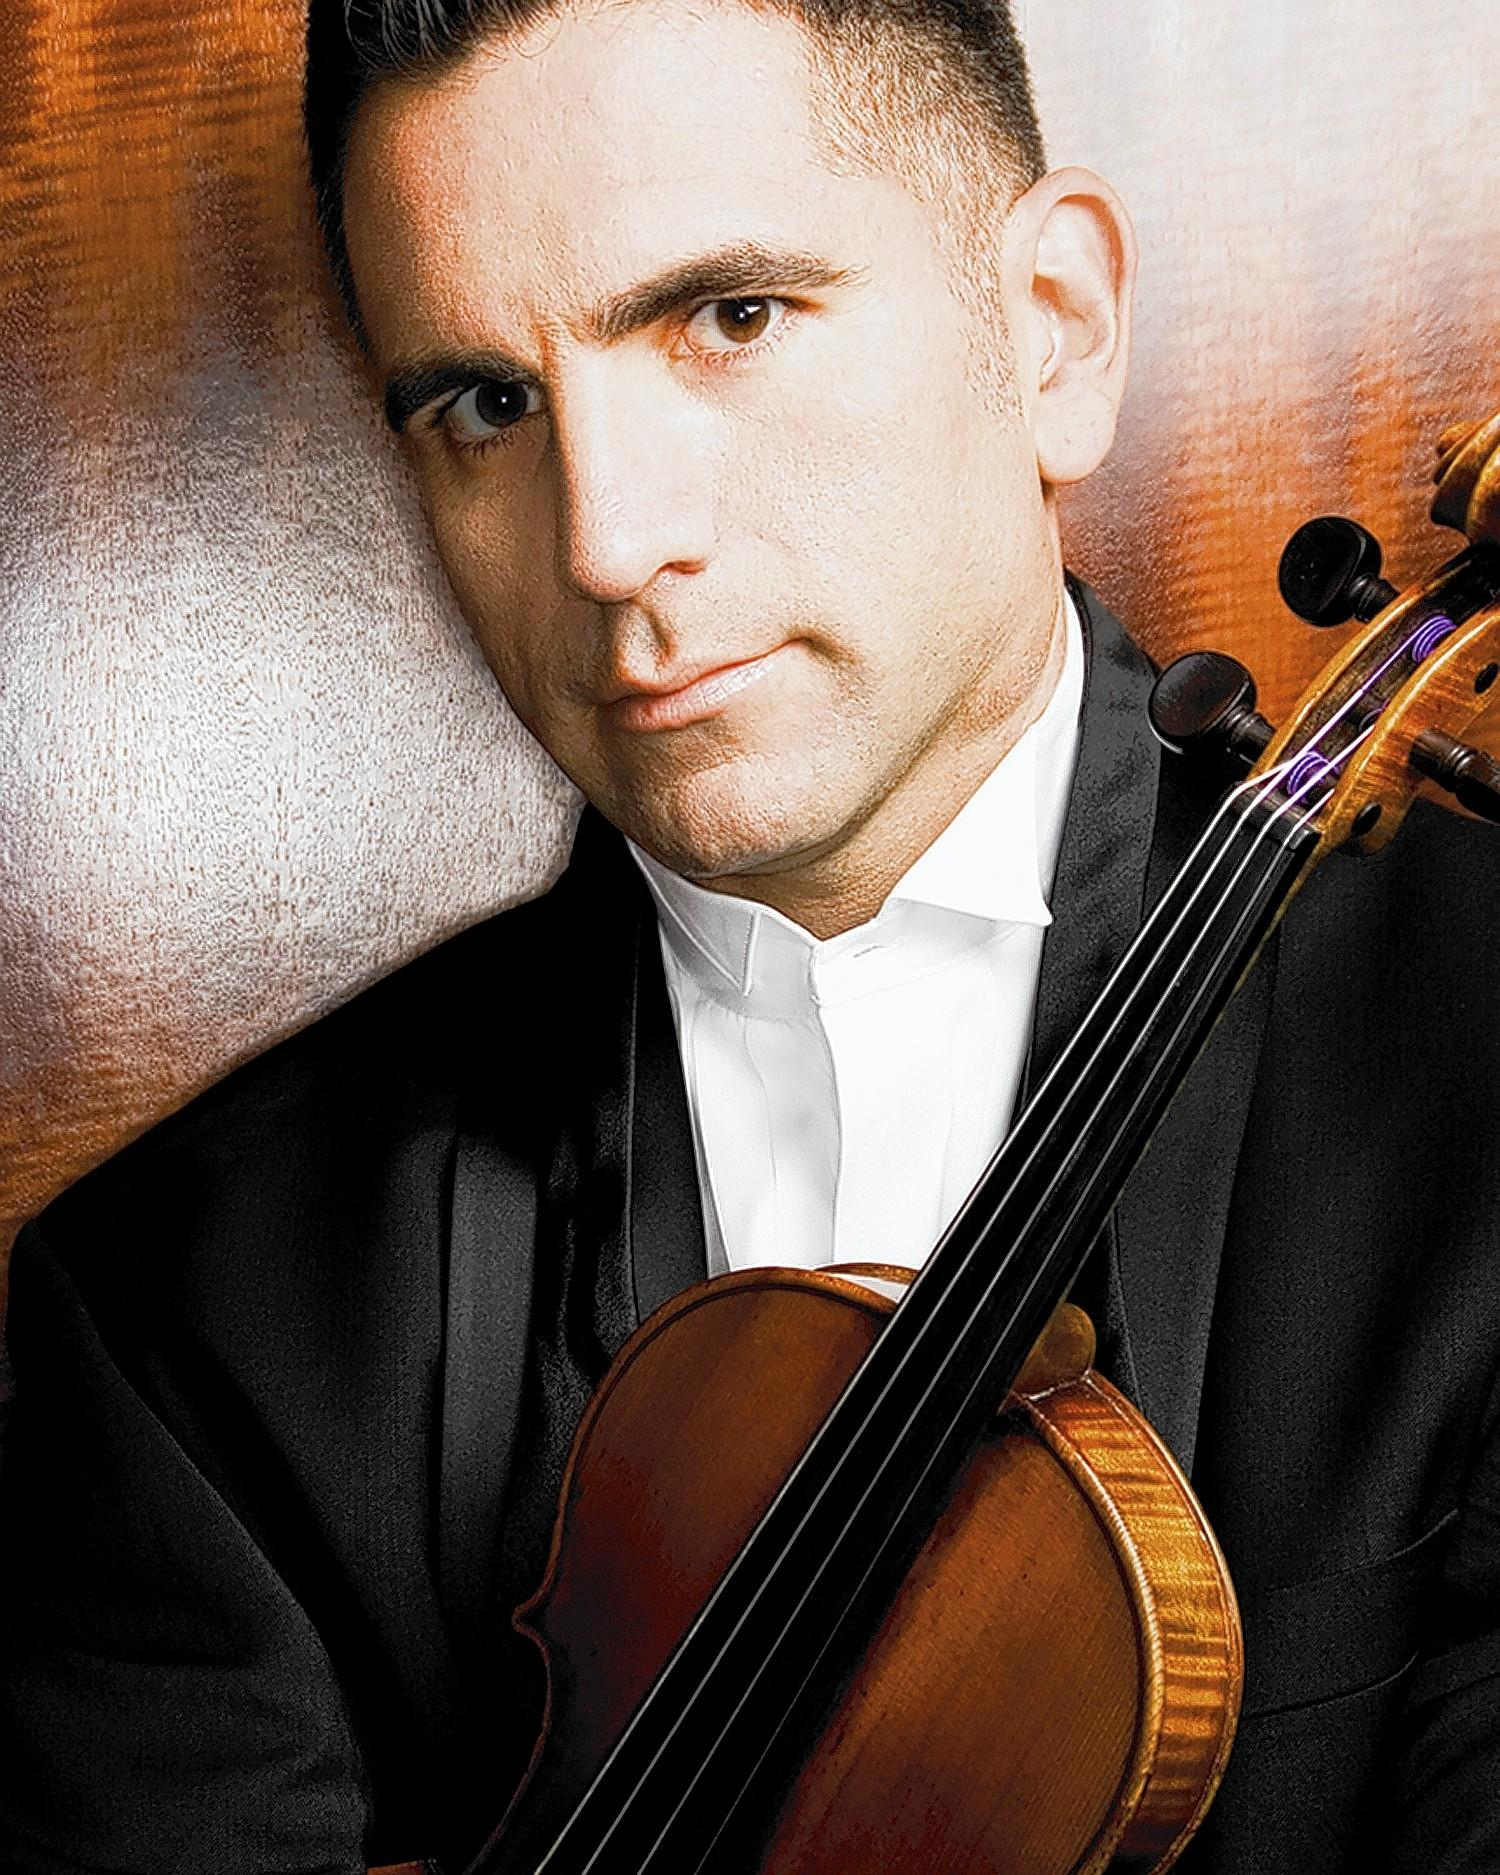 Timothy Schwarz, organizer of the Techne Music Festival, presents a faculty concert at 7 p.m. Friday featuring Schwarz and Domenic Salerni, violins, violist Esme Allen-Creighton and cellist Lawrence Stomberg.